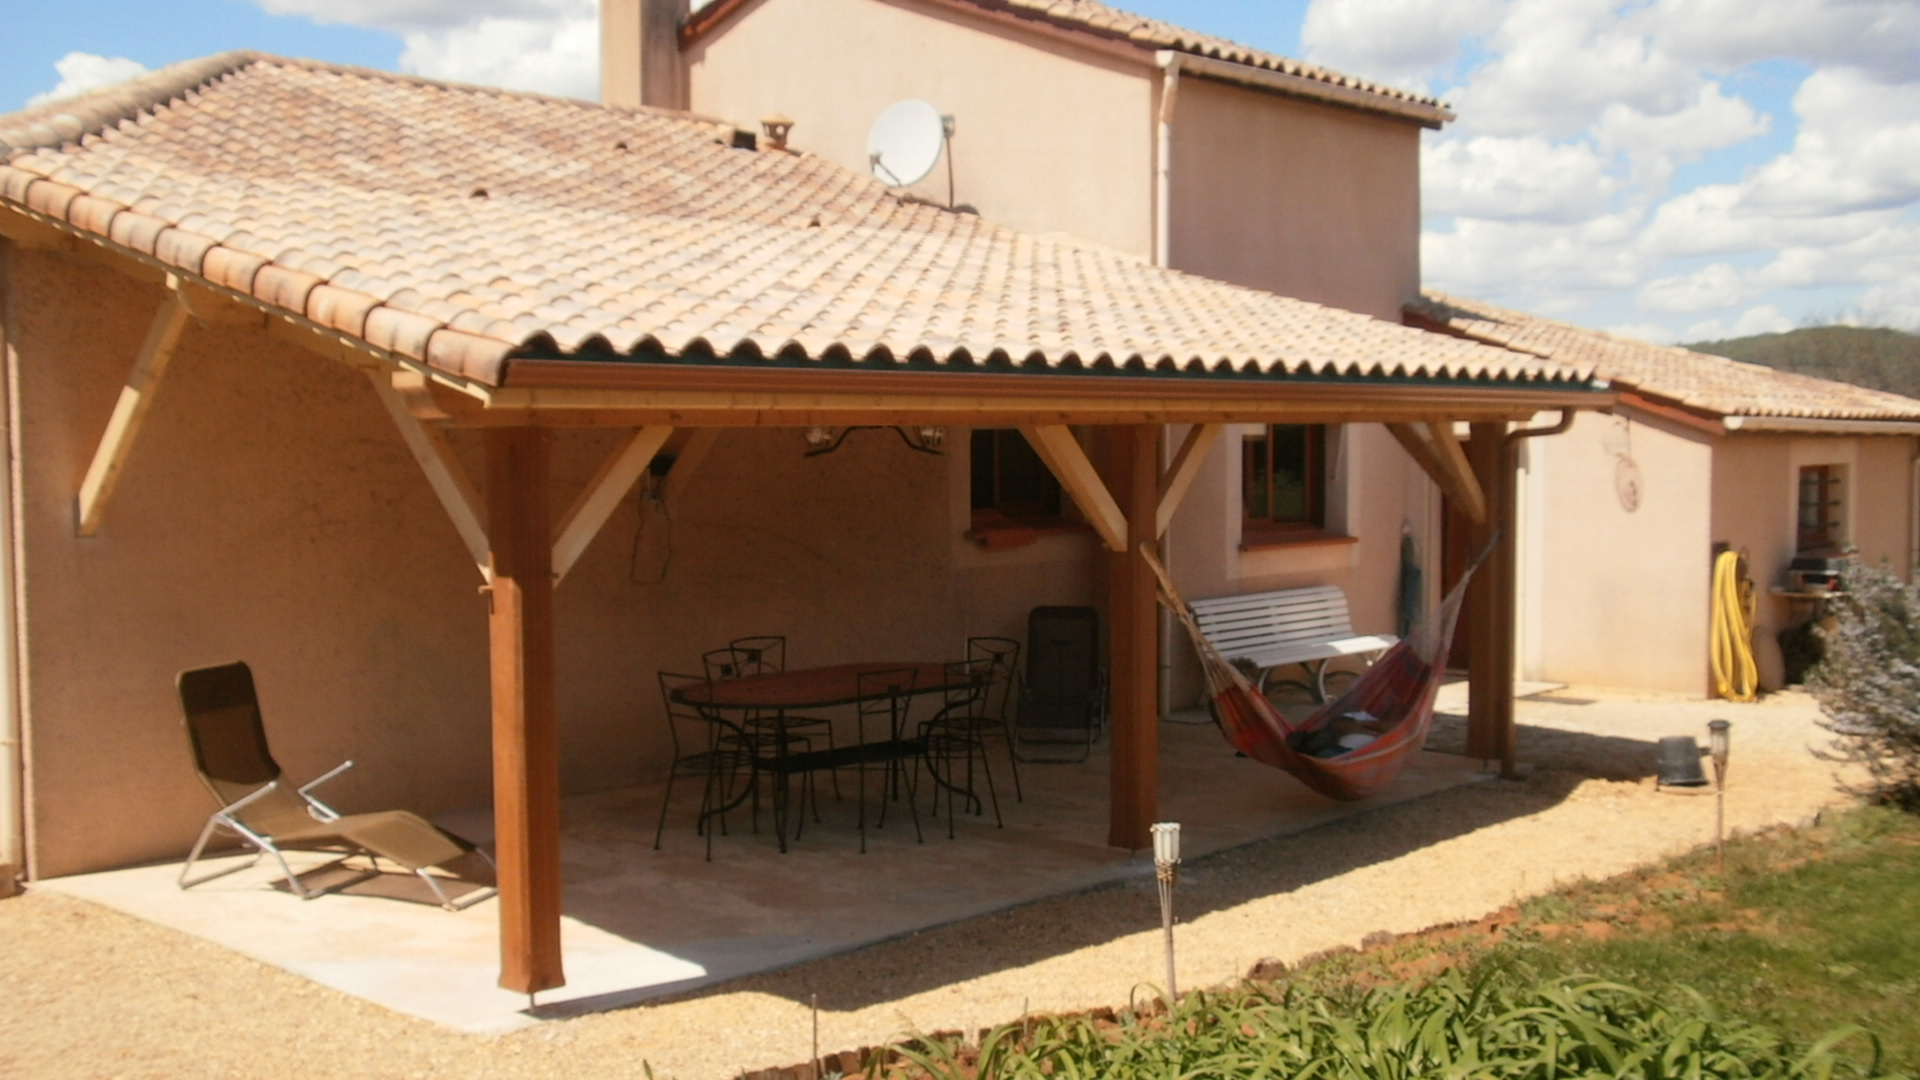 Terrasse charpente traditionnelle fargal for Couverture pour terrasse